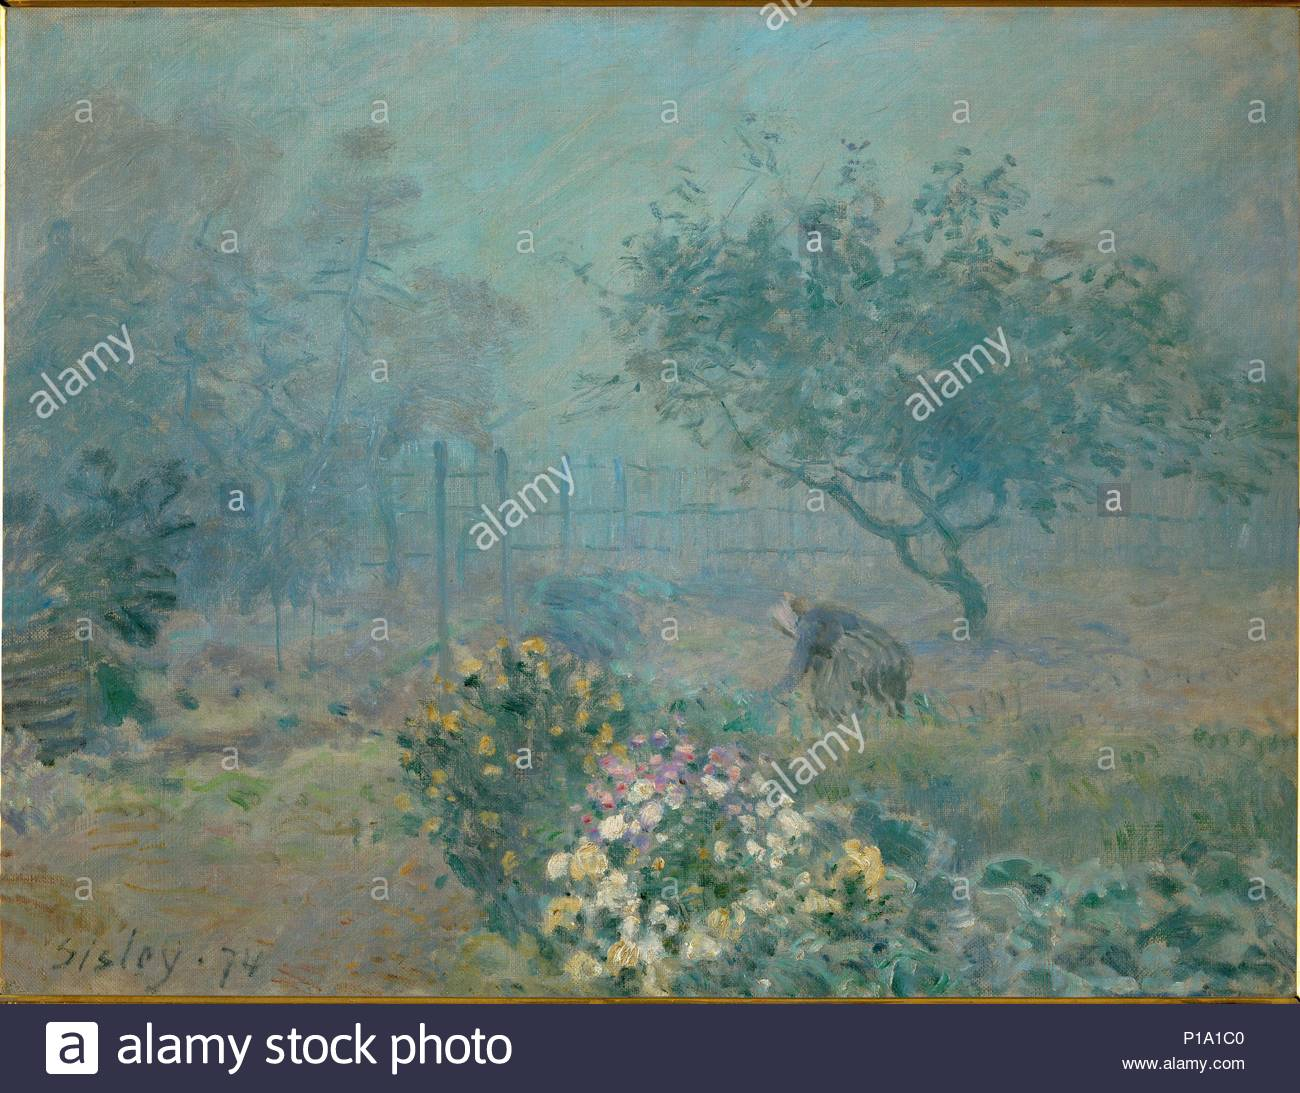 Le brouillard-Fog, 1874 Canvas, 50,5 x 65 cm R. F.1937-64. Author: Alfred Sisley (1839-1899). Location: Musee d'Orsay, Paris, France. - Stock Image